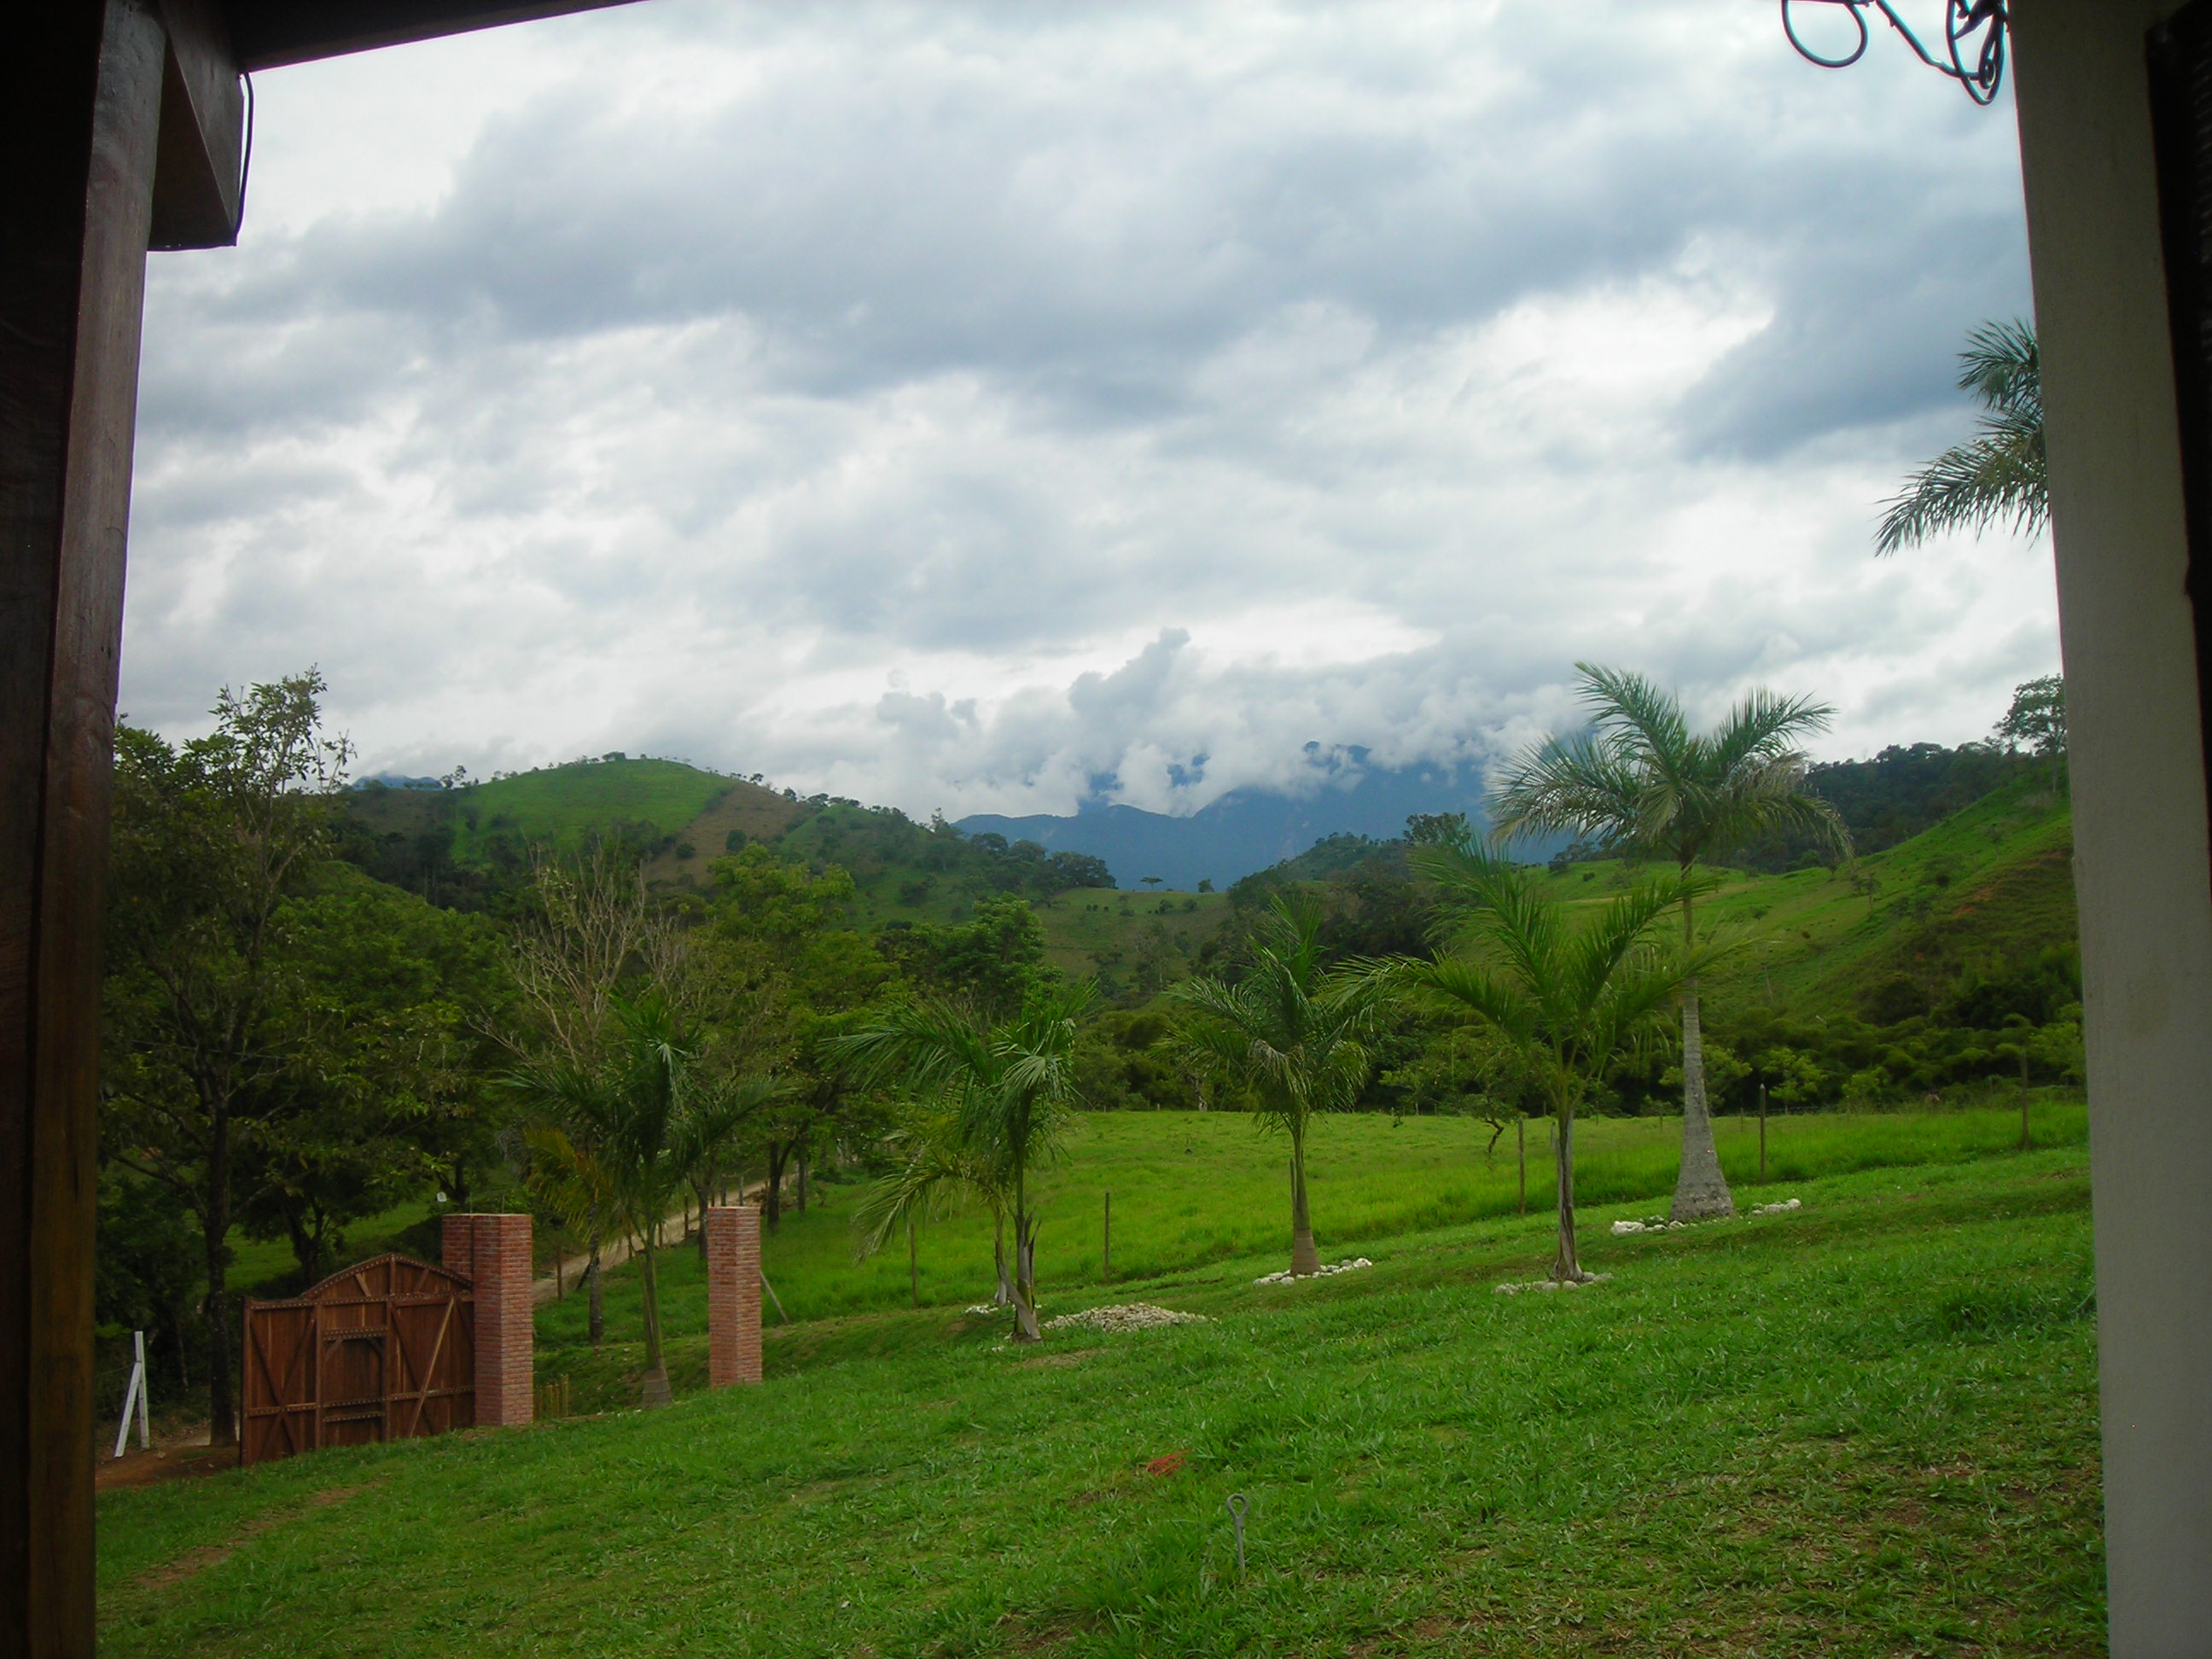 My family's farm in hills of Medellin